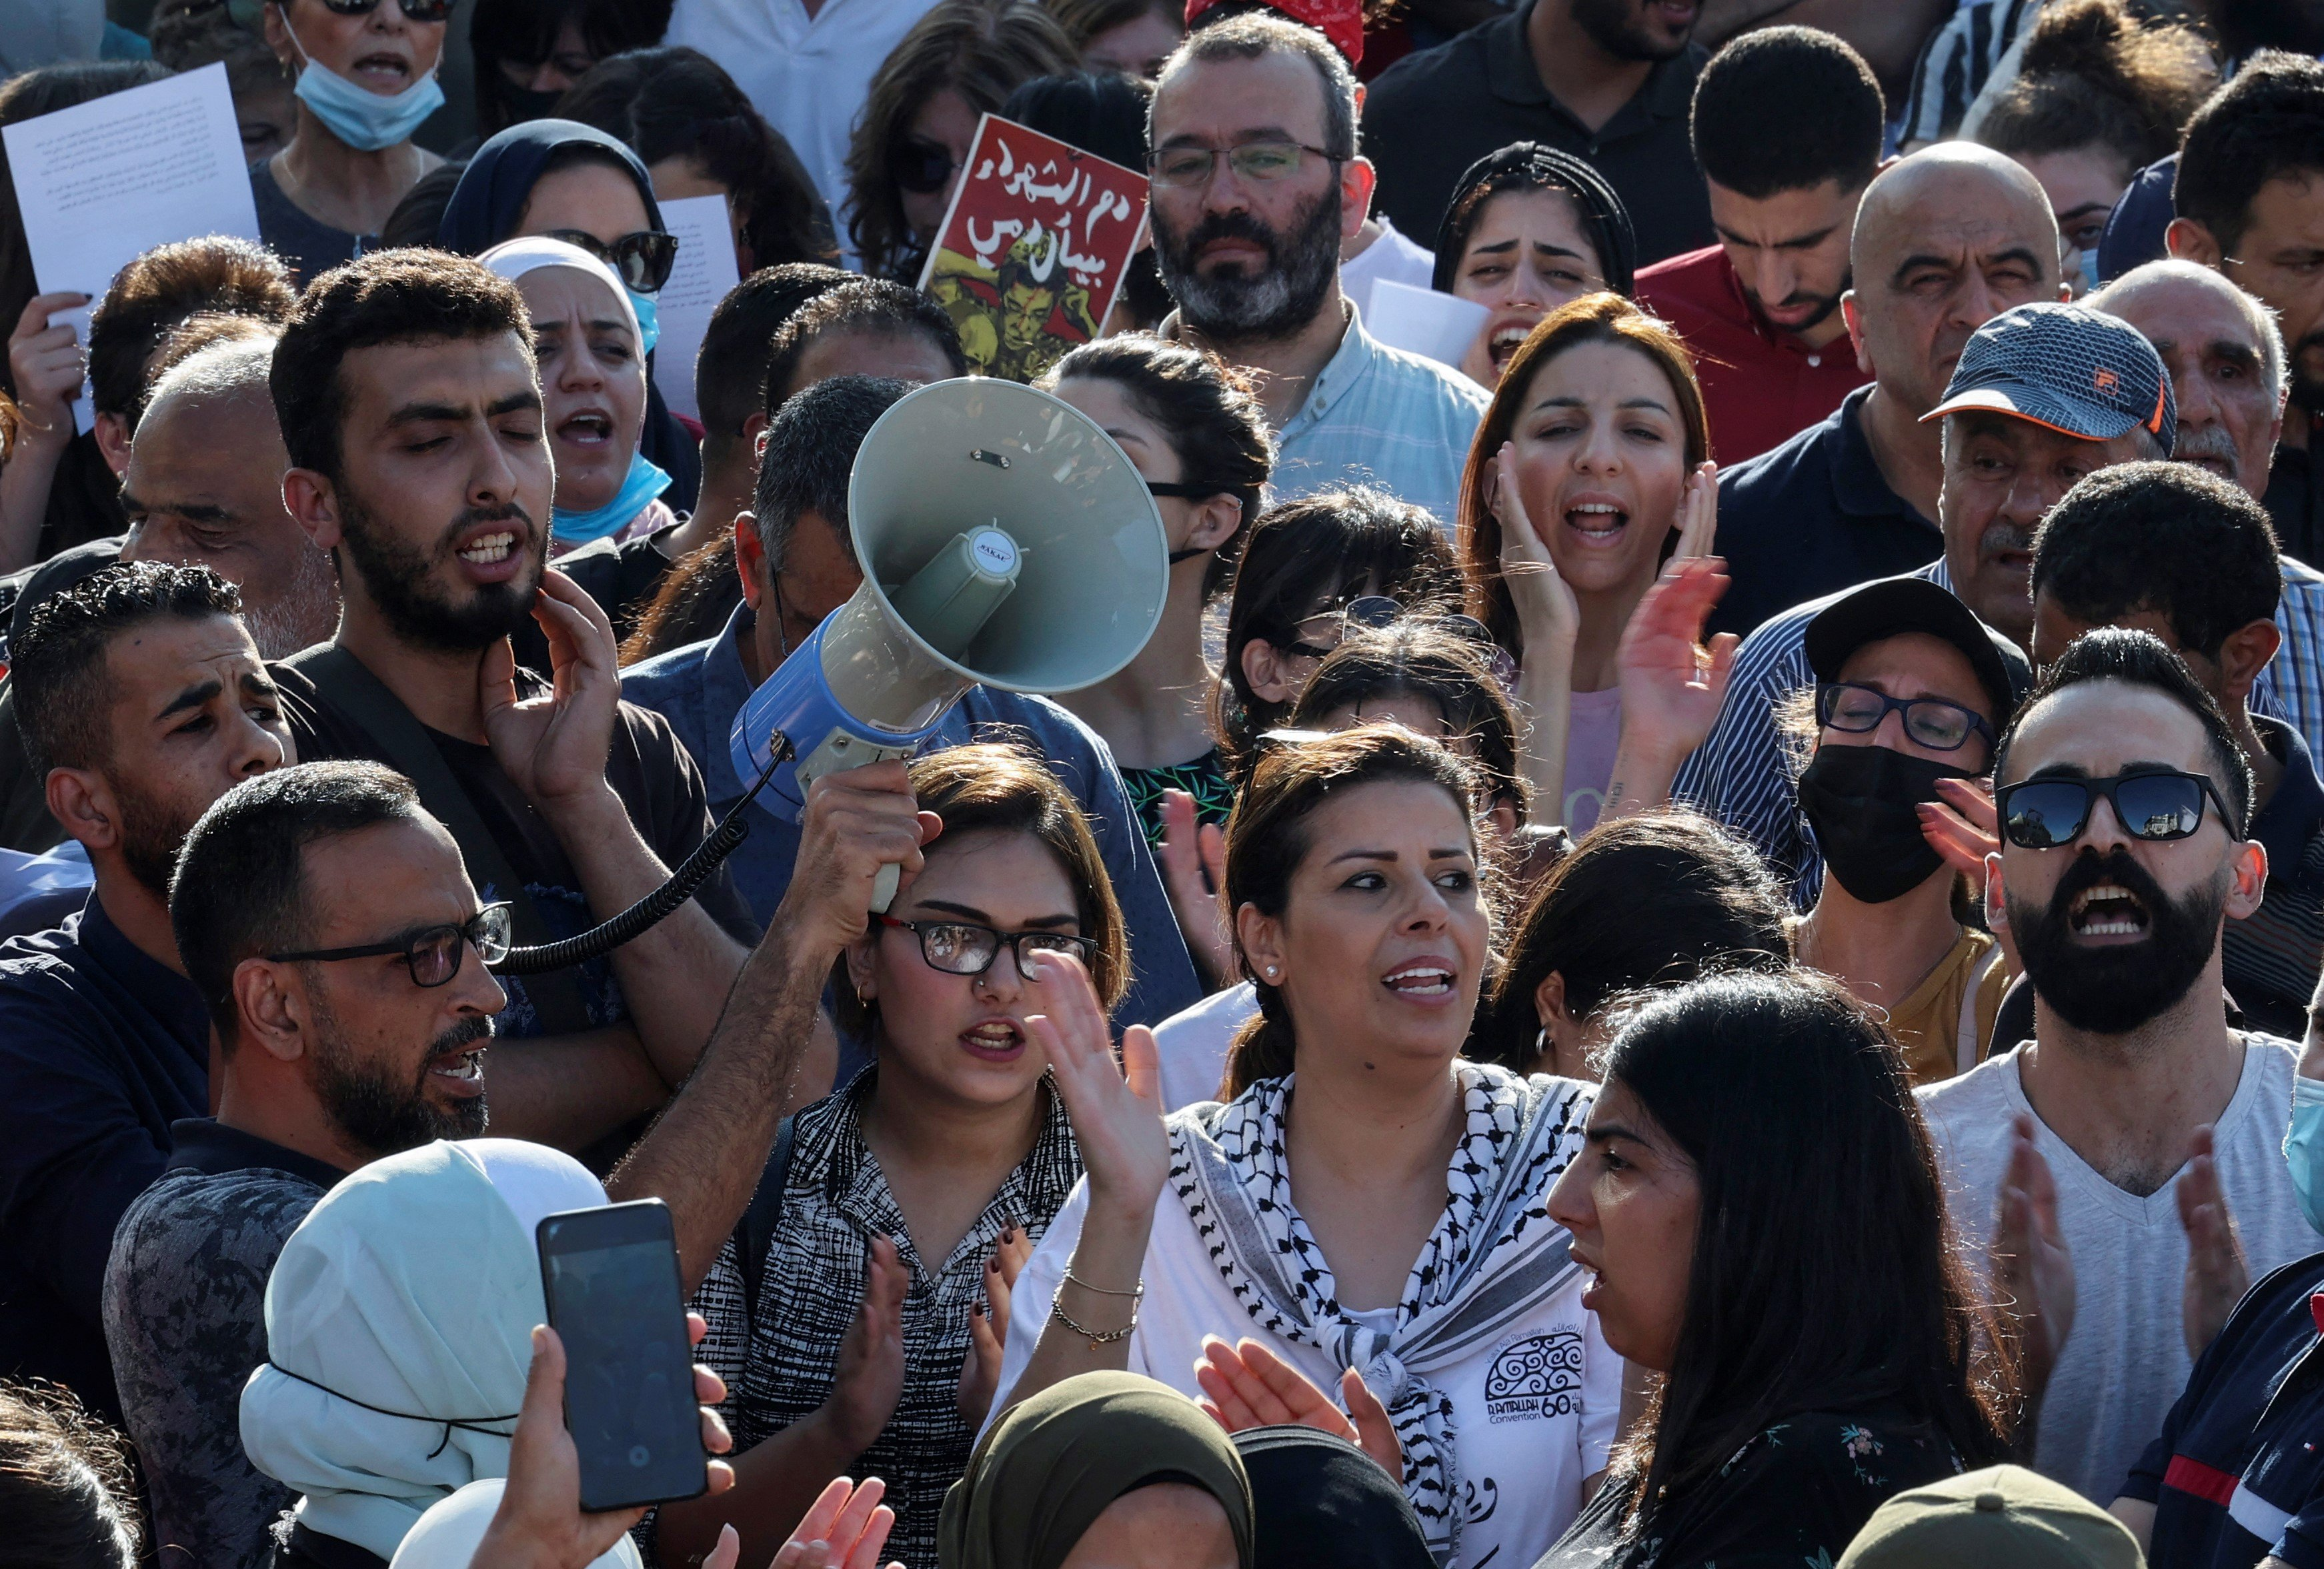 Palestinian demonstrators chant during a rally in Ramallah city in the occupied West Bank on July 11, 2021